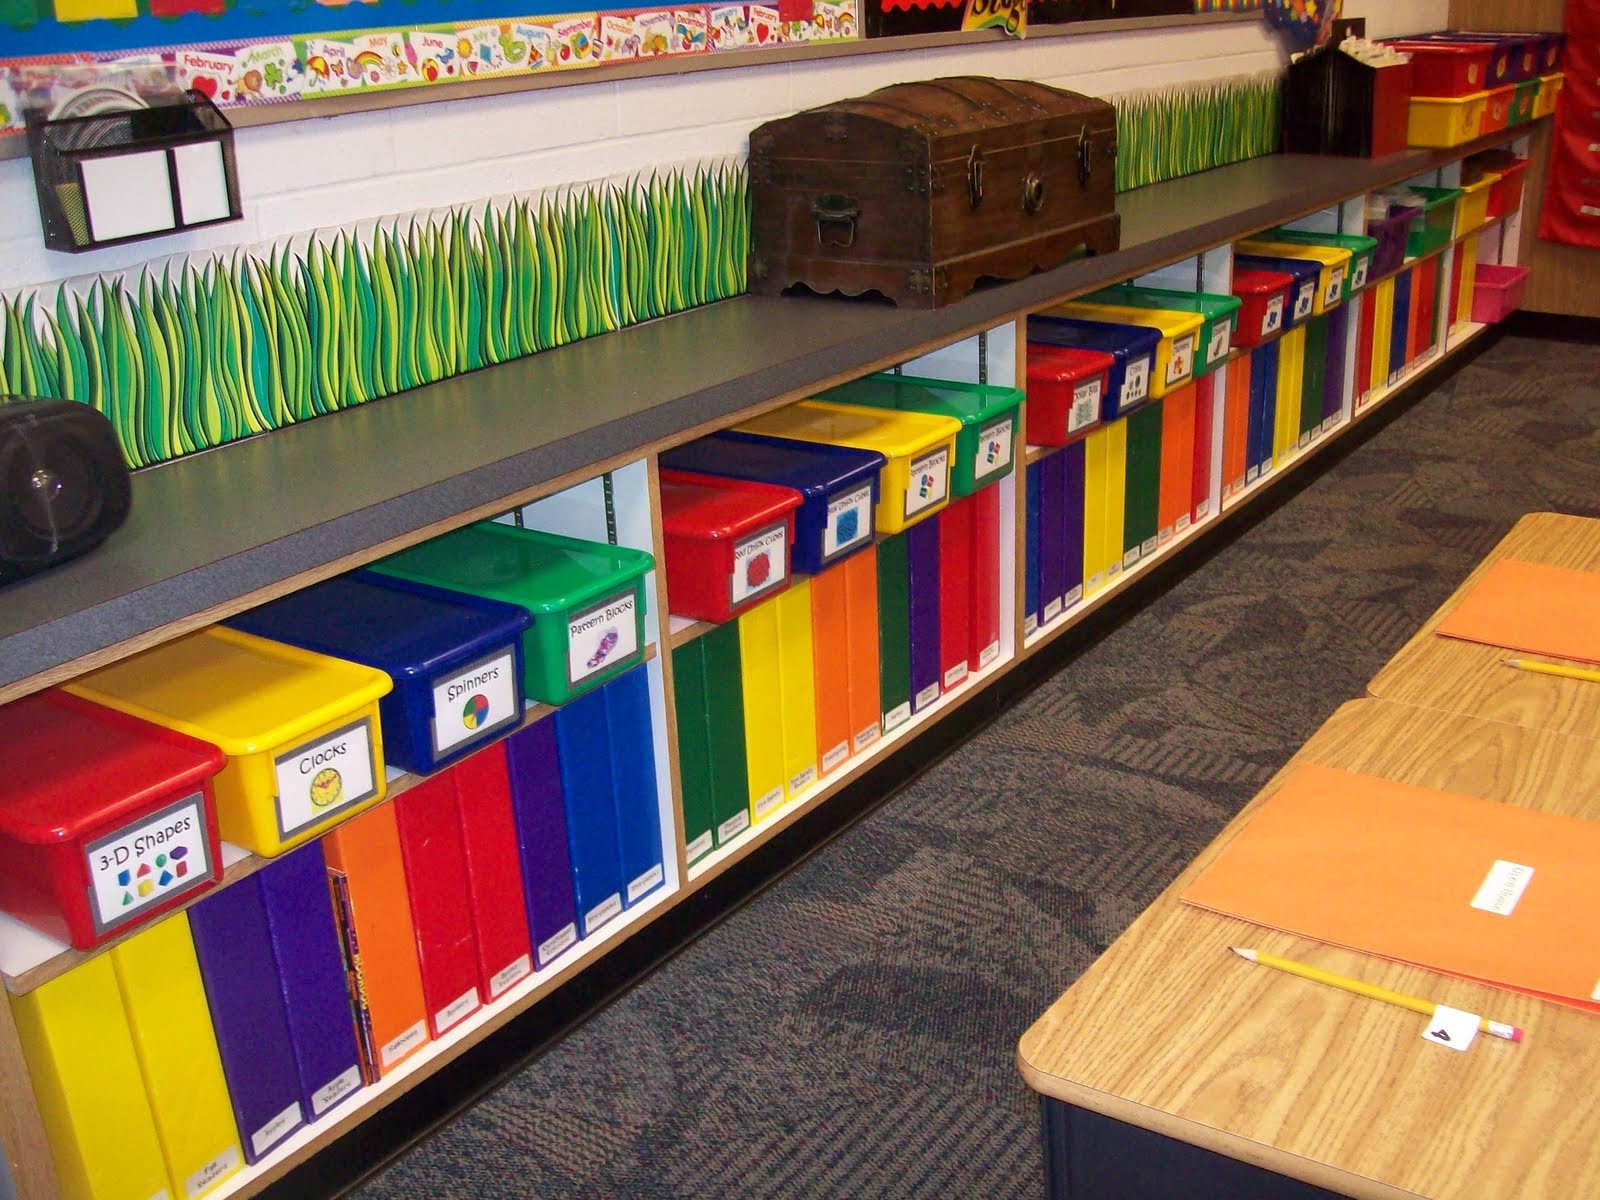 Best ideas about Classroom Storage Ideas . Save or Pin TEACHER SOL Middle school teacher offers 10 classroom Now.